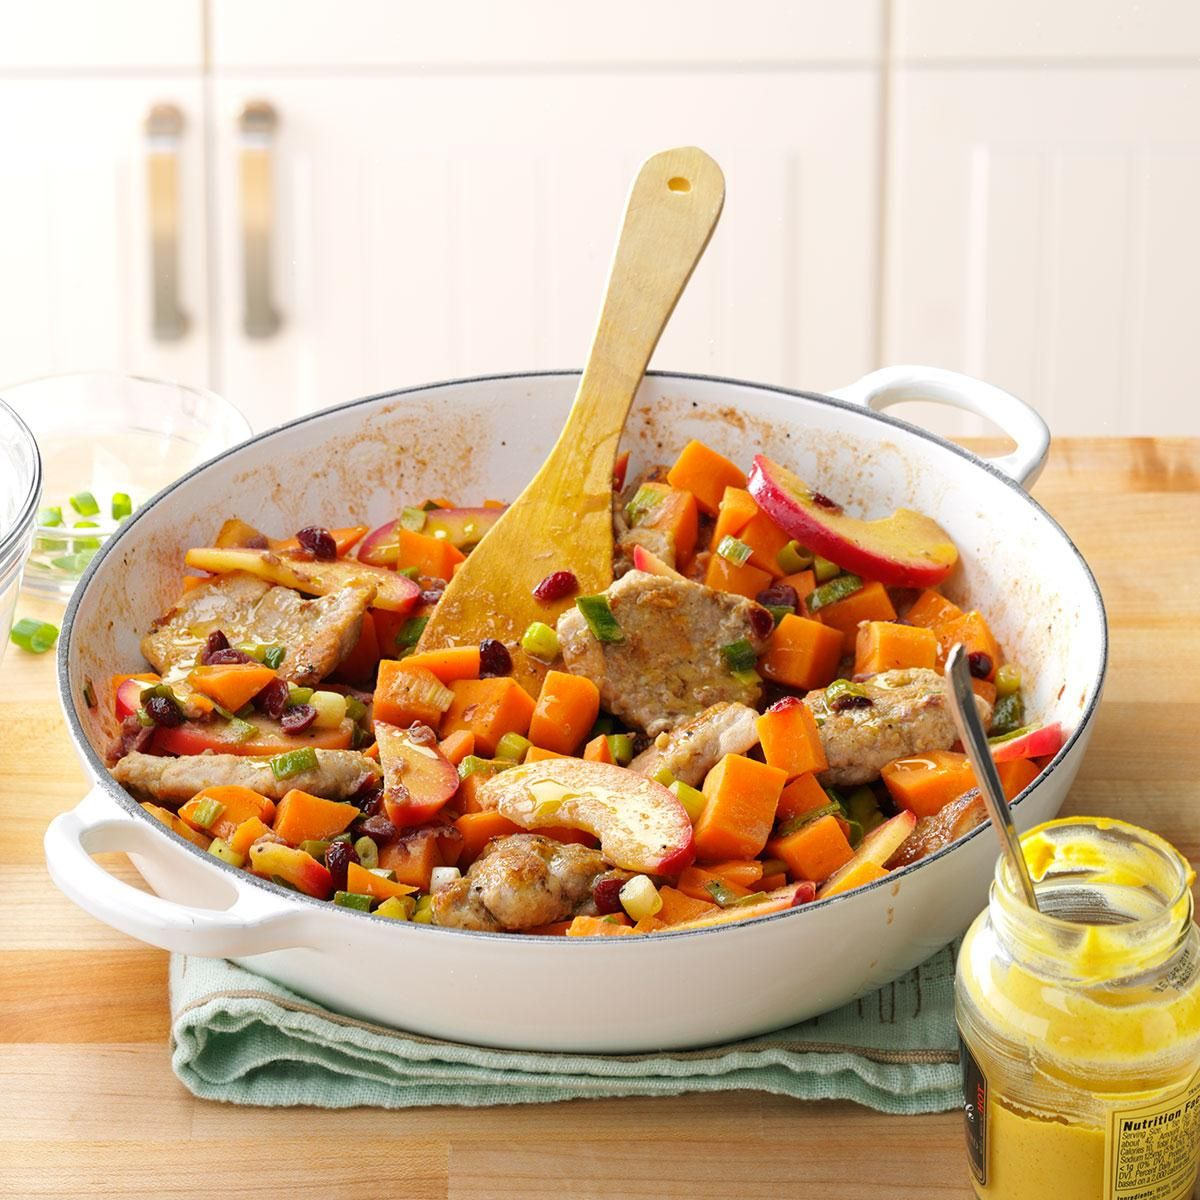 Healthy One Pot Meals 6 Easy Diabetic Dinner Recipes: Pork With Sweet Potatoes